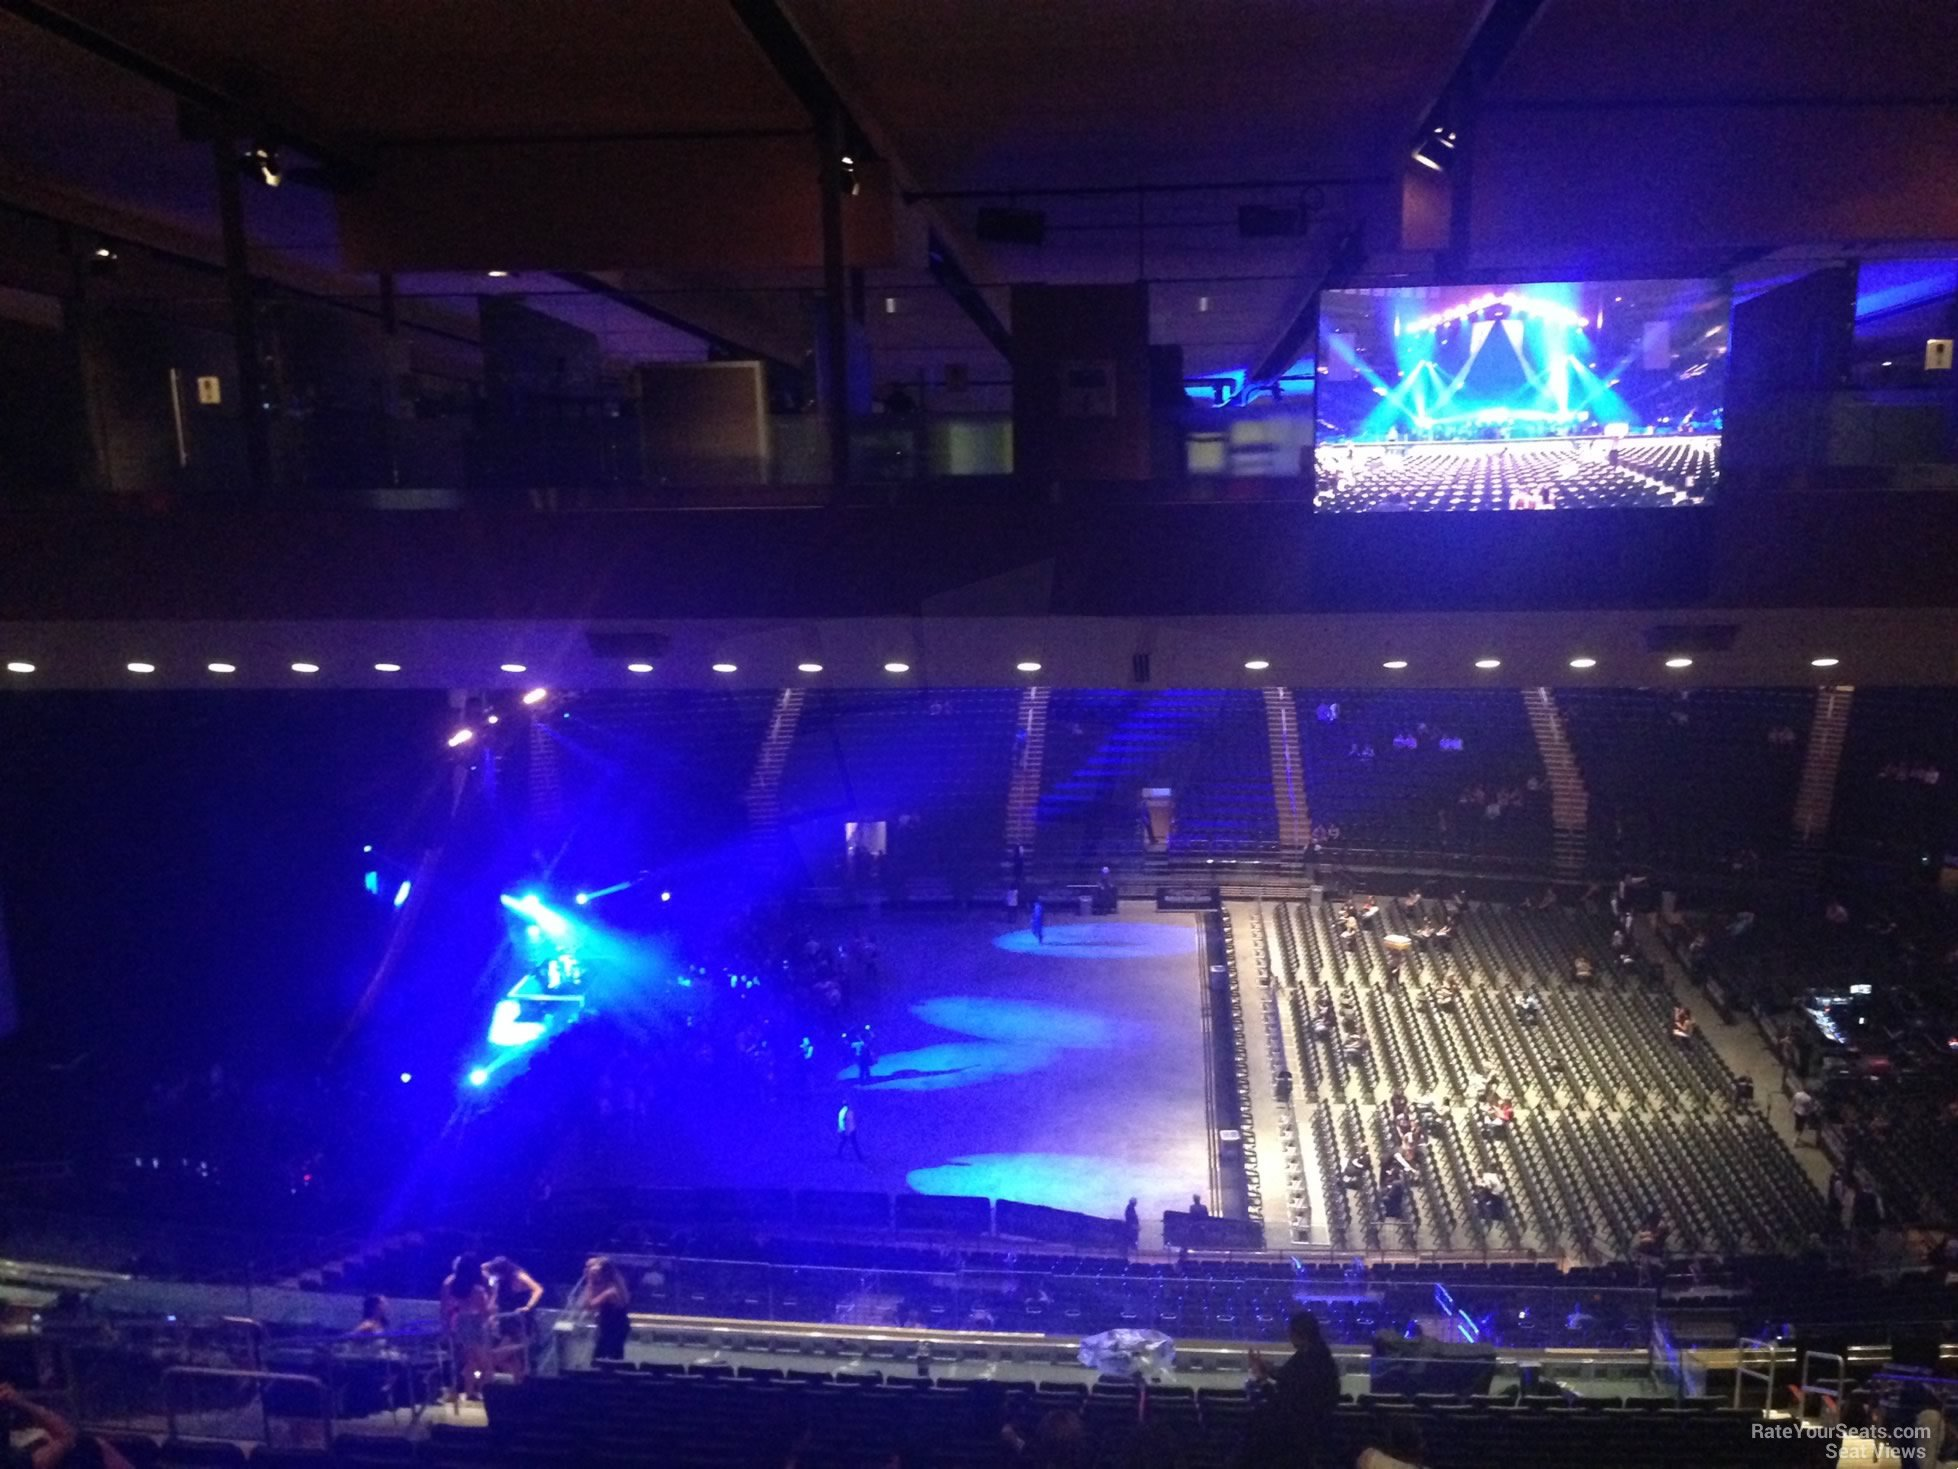 Madison Square Garden Section 224 Concert Seating